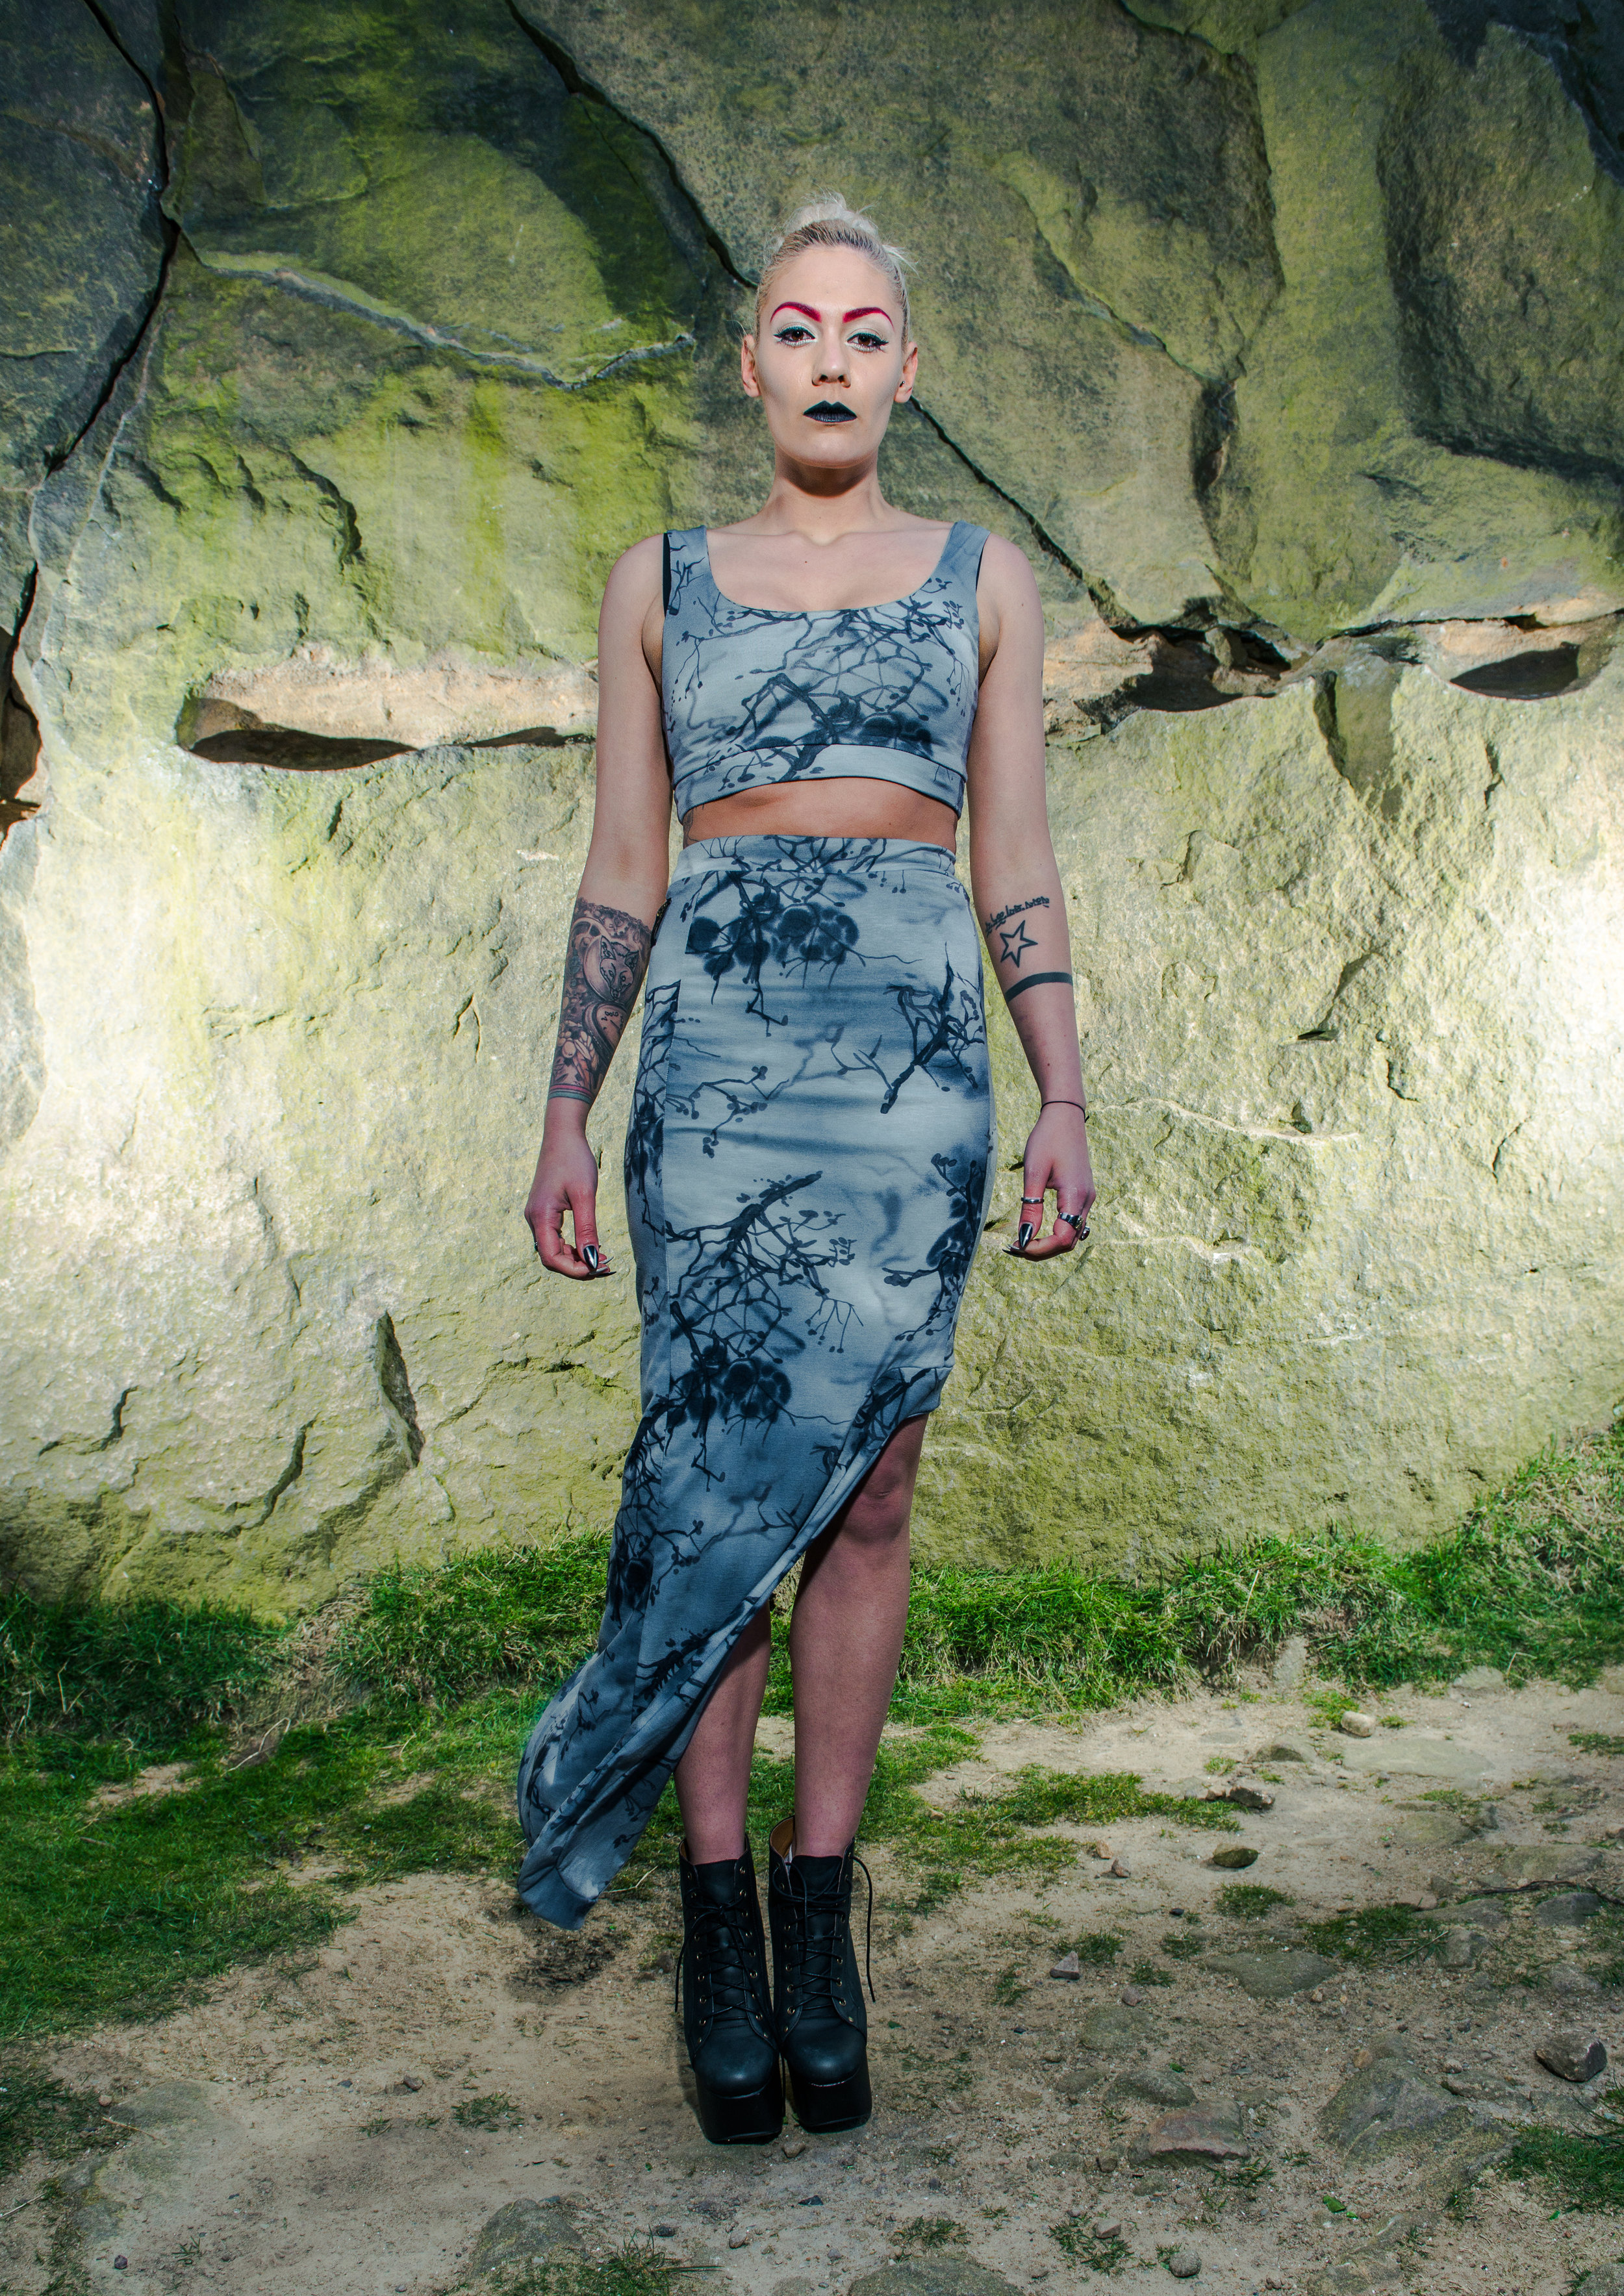 zaramia-ava-zaramiaava-leeds-fashion-designer-ethical-sustainable-tailored-minimalist-grey-print-fitted-bandeau-maxi-skirt-versatile-drape-cowl-styling-womenswear-models-photoshoot-location-25